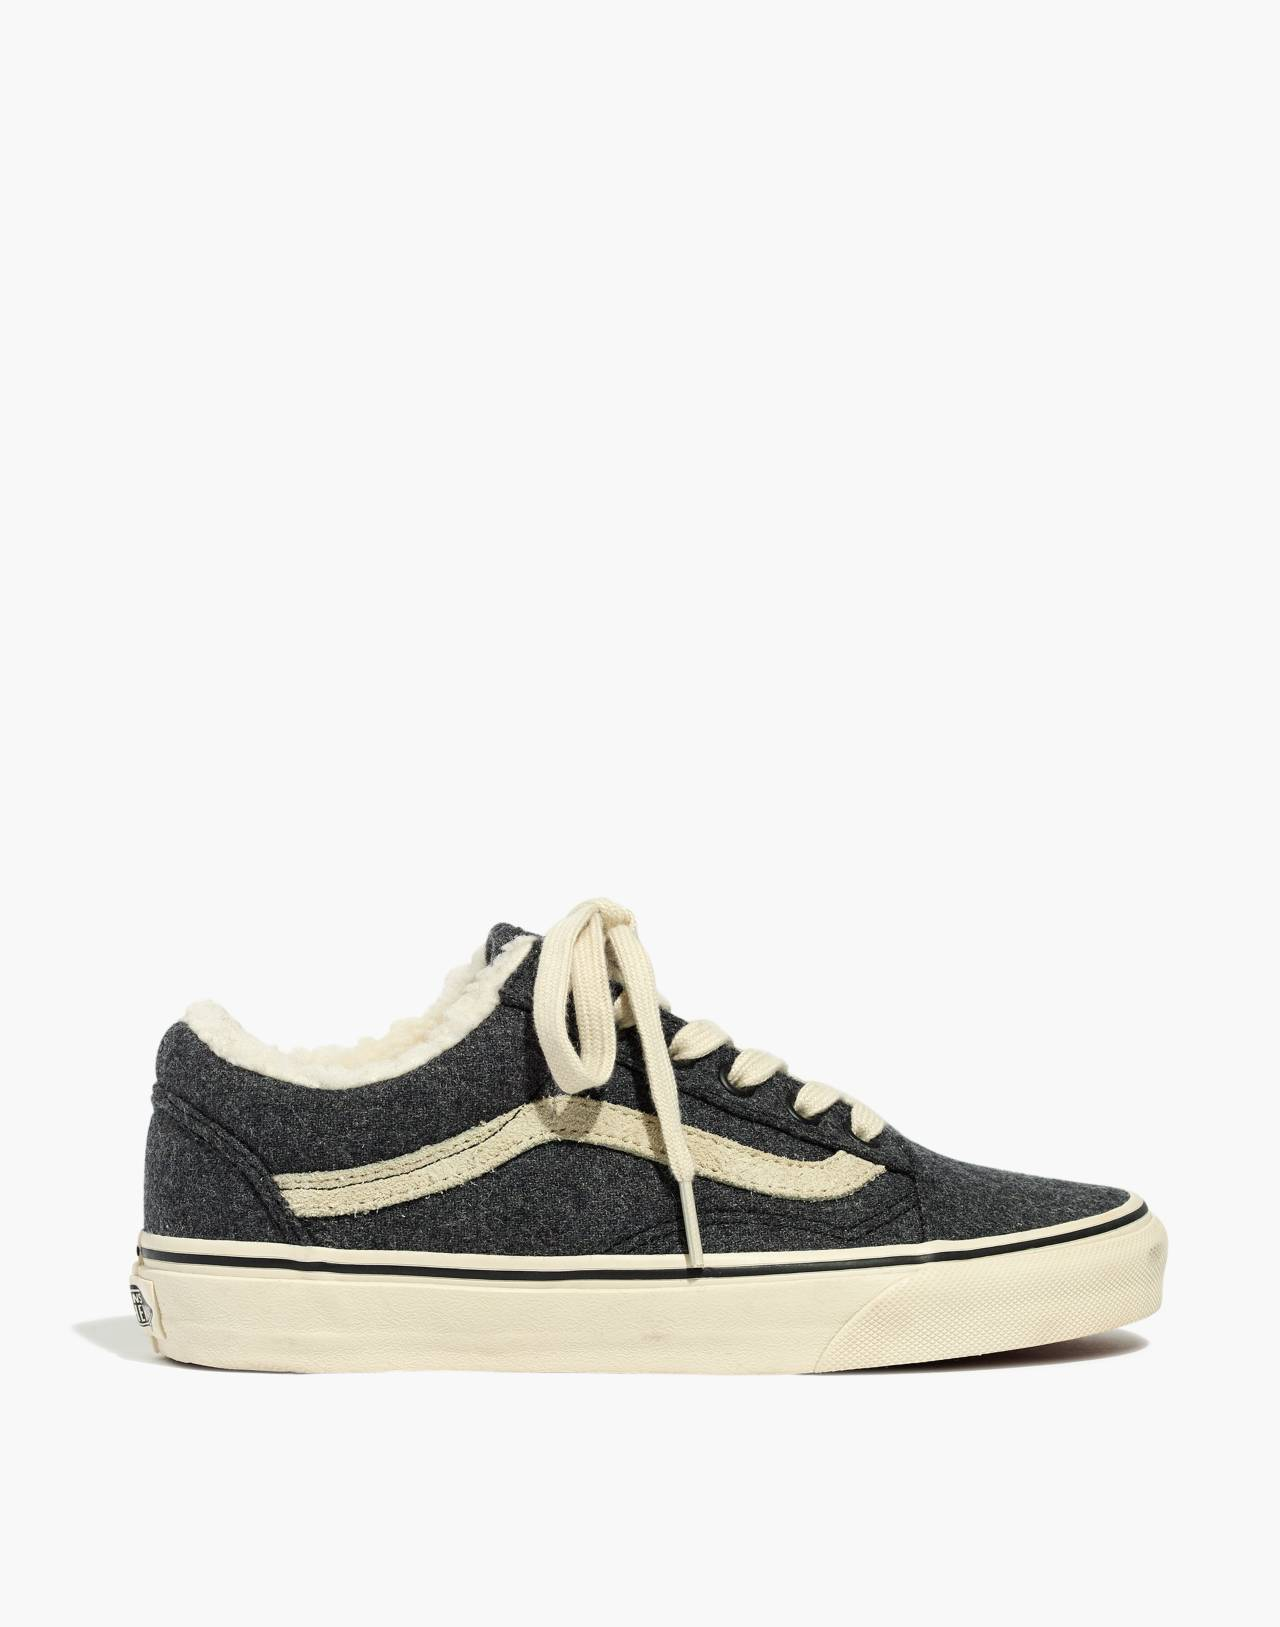 Madewell x Vans® Unisex Old Skool Lace-Up Sneakers in Flannel and Sherpa in black true white image 2